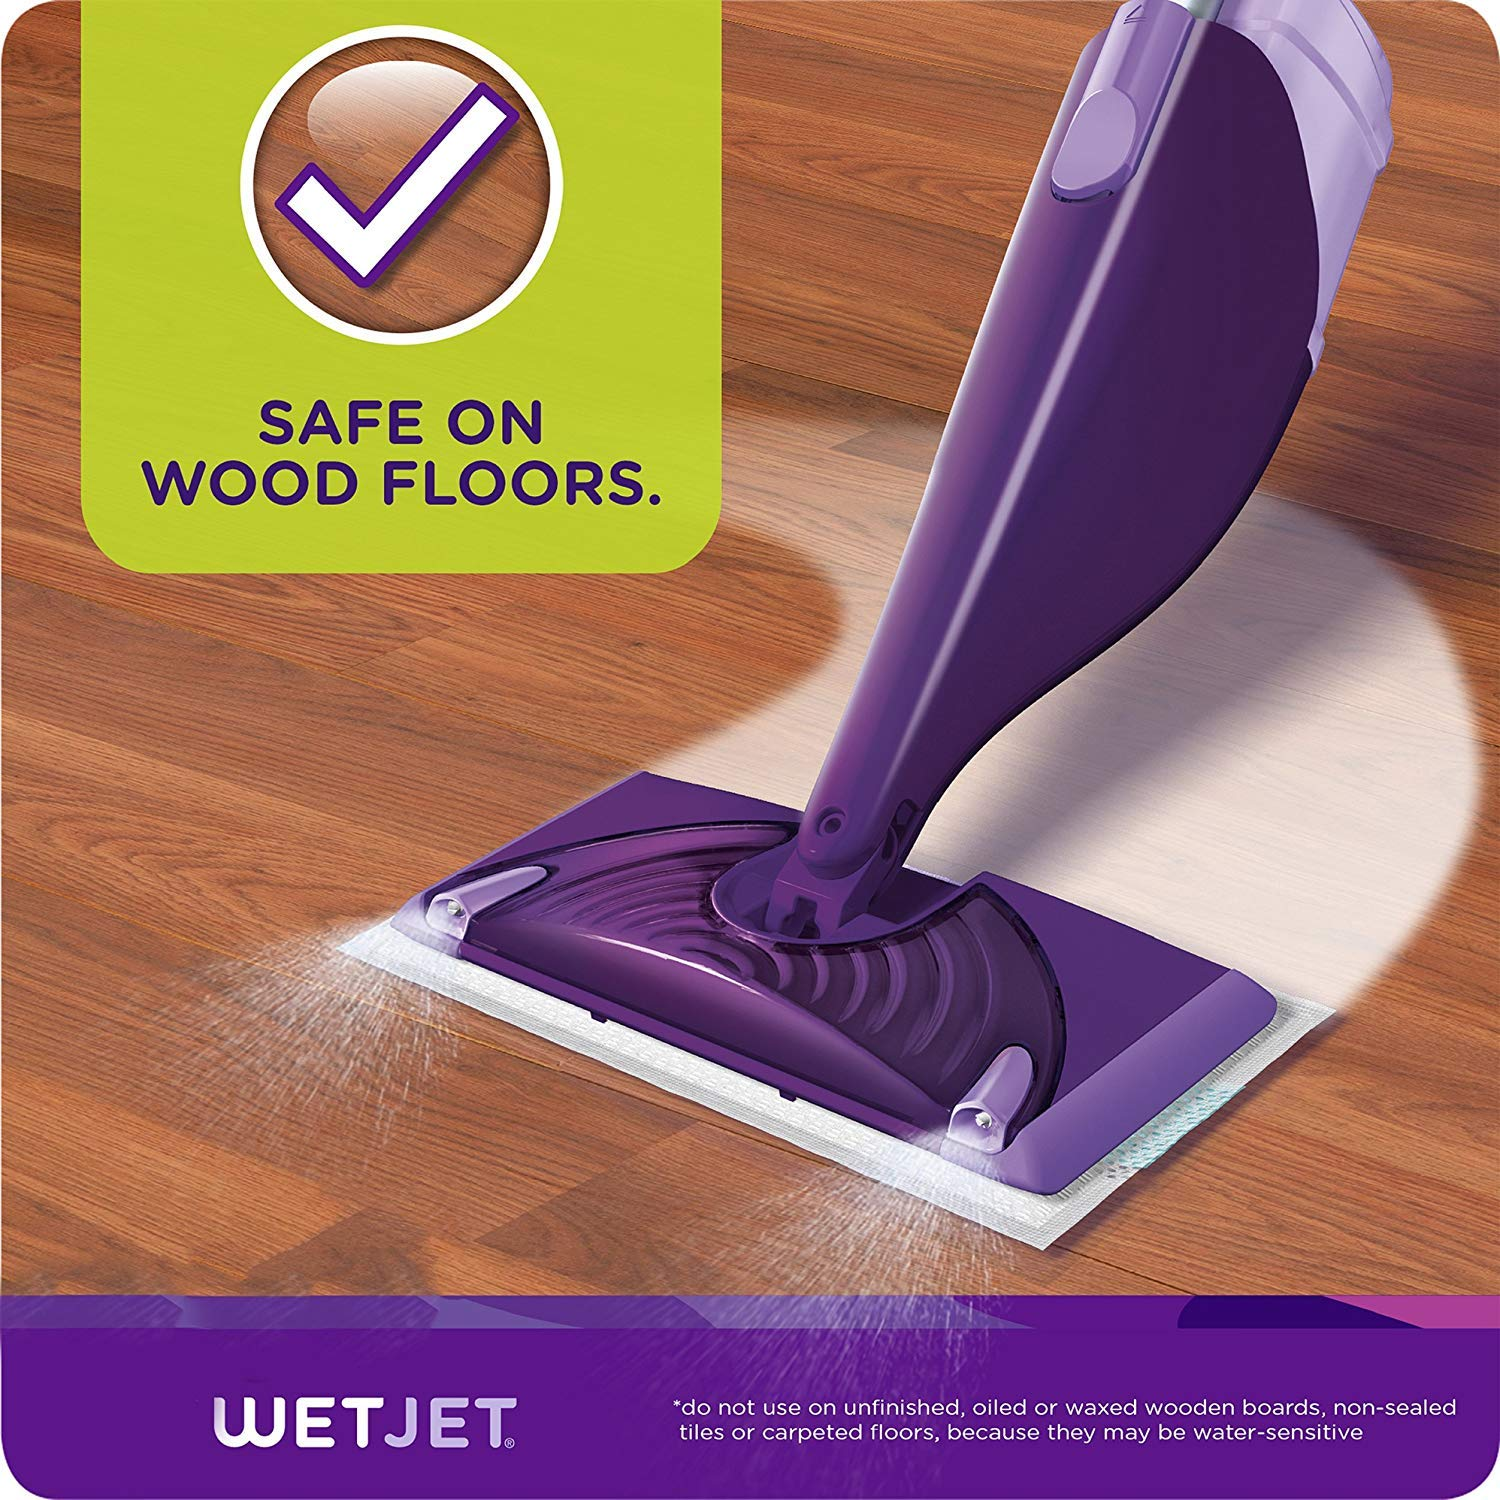 Swiffer Wetjet Hardwood Mop Pad Refills for Floor Mopping and Cleaning, All Purpose Multi Surface Floor Cleaning Product, 24 Count - 5 Pack by Swiffer (Image #4)